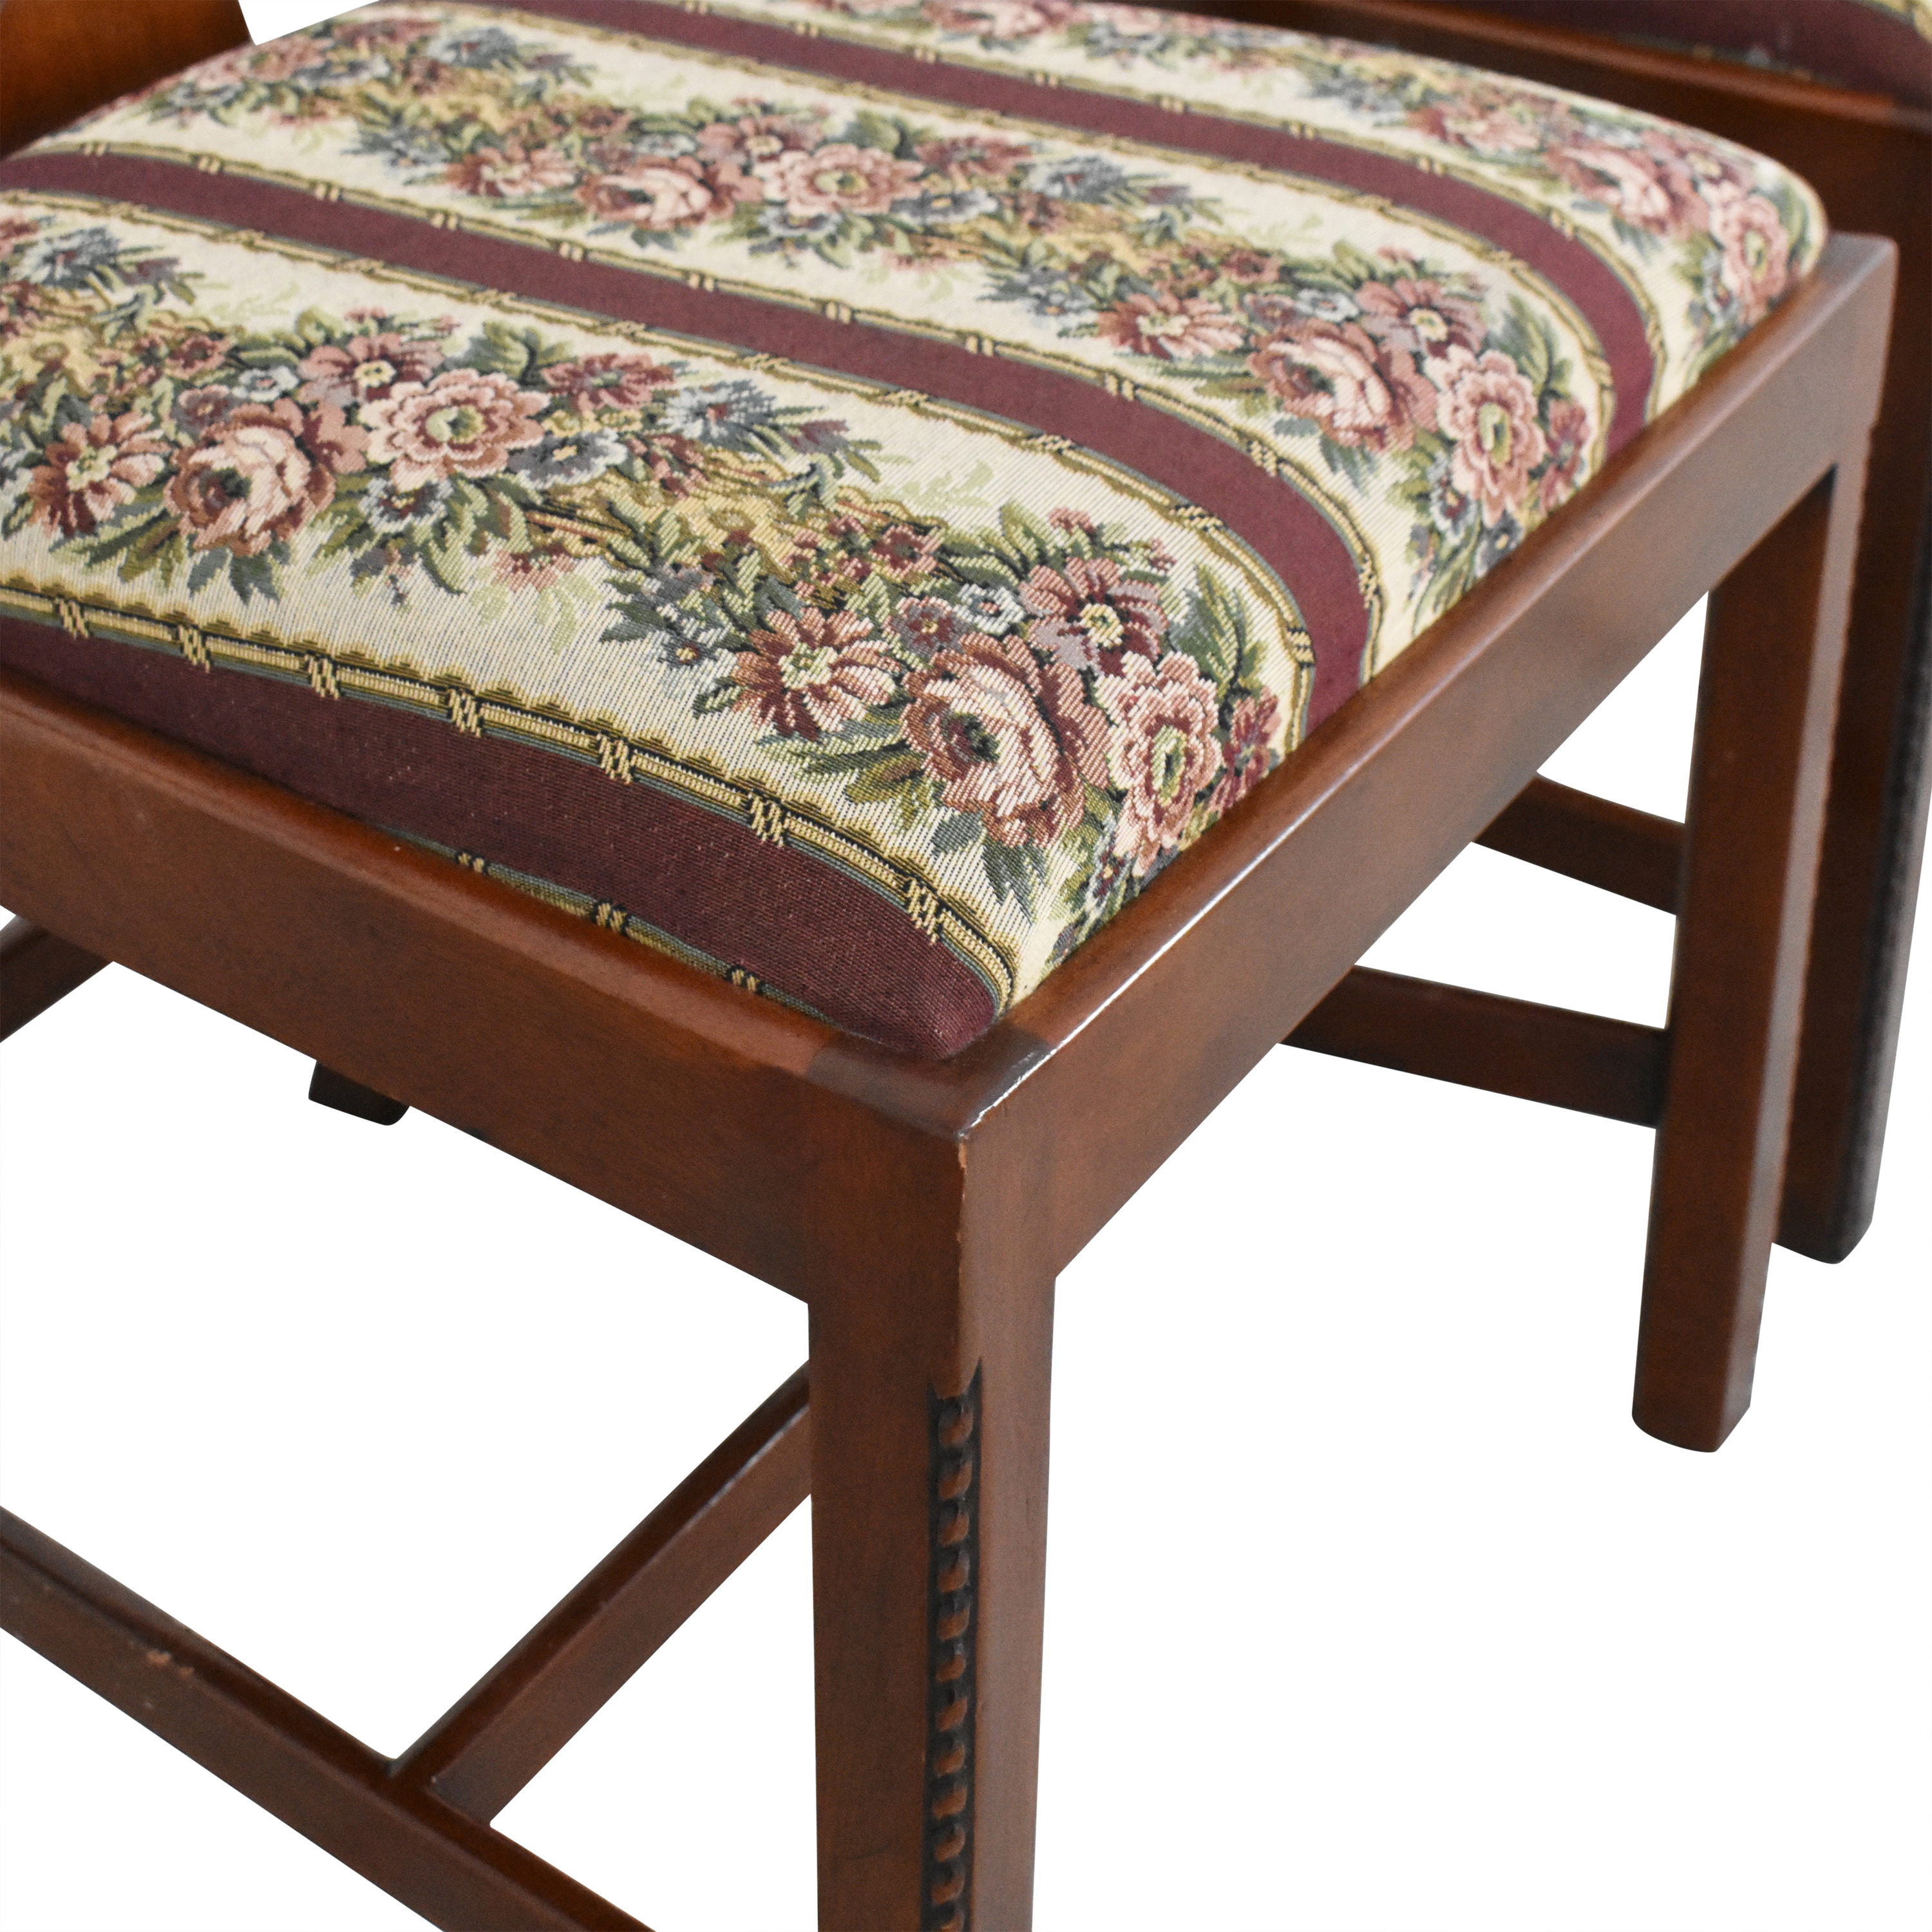 Maitland-Smith Maitland-Smith Chippendale Upholstered Dining Chairs ct